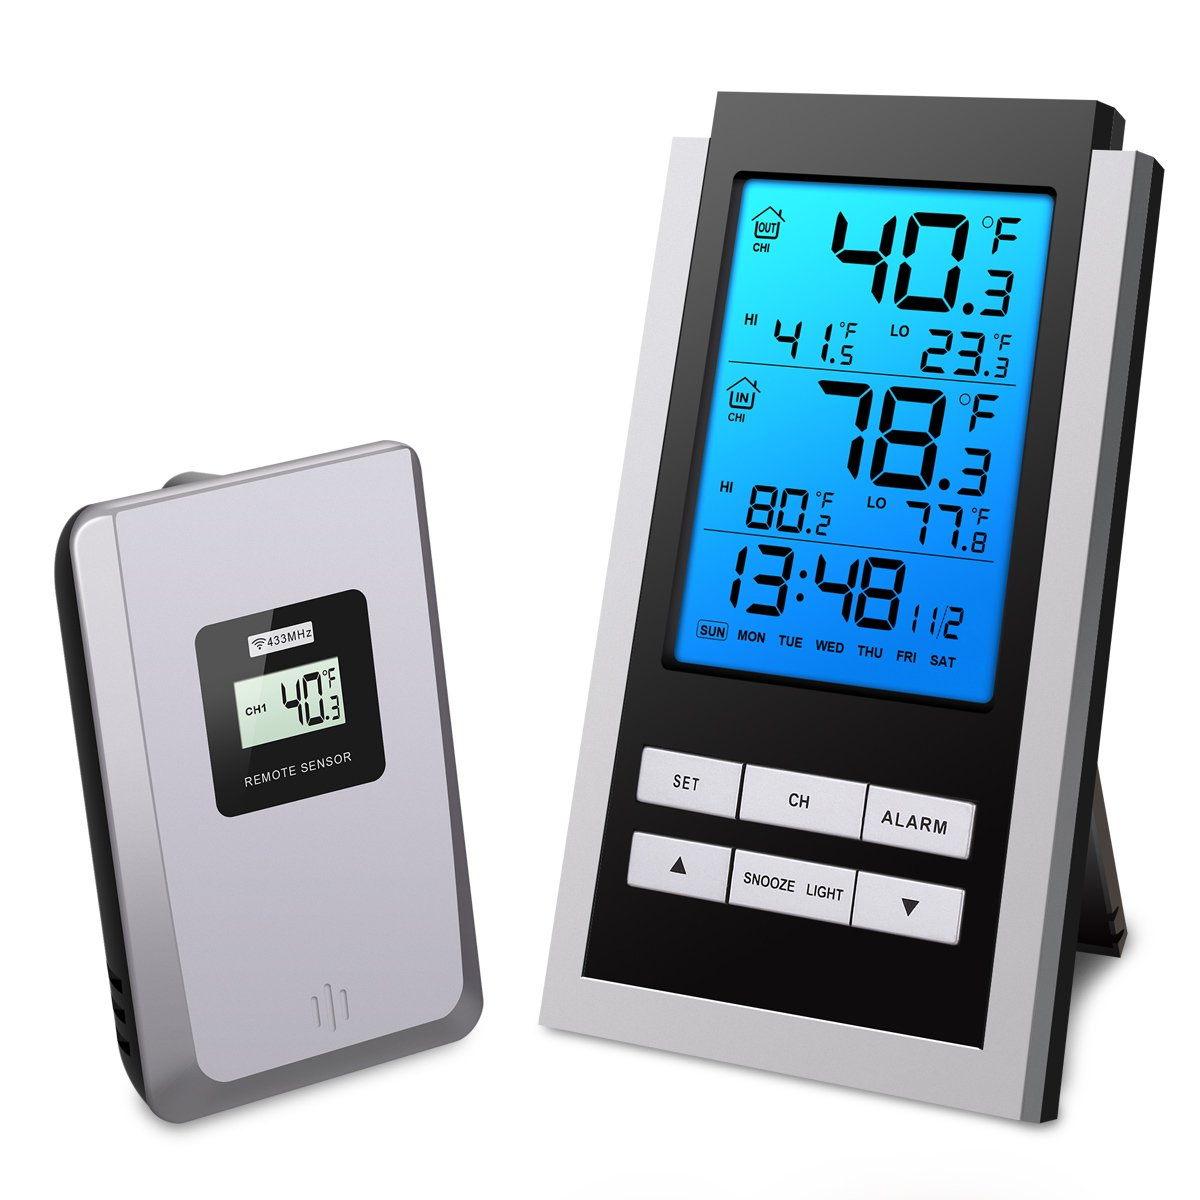 ORIA Indoor Thermometer, with Alarm Clock and Snooze Function, Digital Wireless Indoor/Outdoor Temperature Monitor, Remote Thermometer with Blue Backlight, Battery Not Included by ORIA